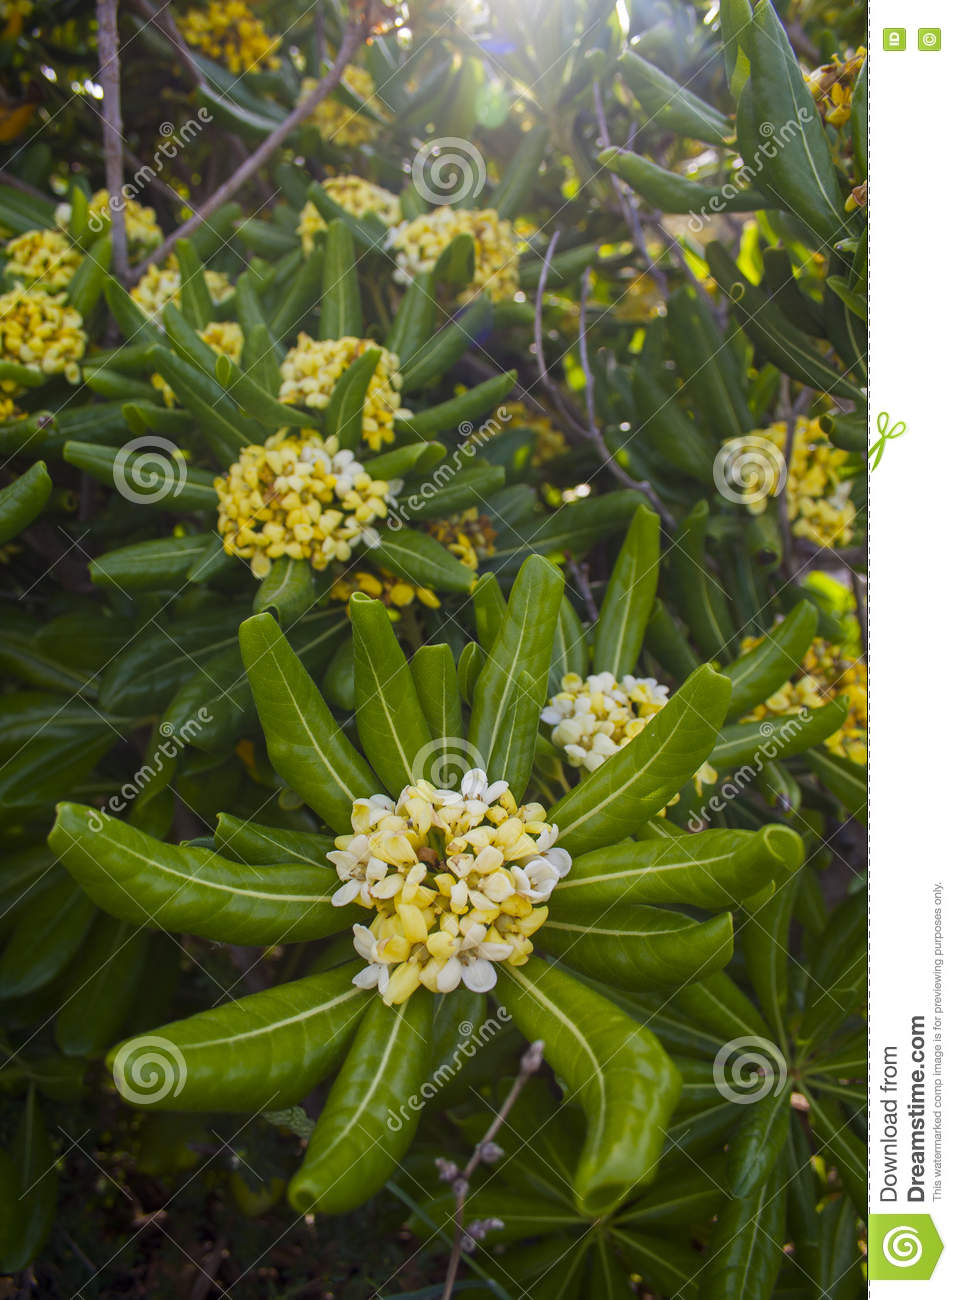 Beautiful Tree With White Yllow Flowers And Big Leaves Stock Image